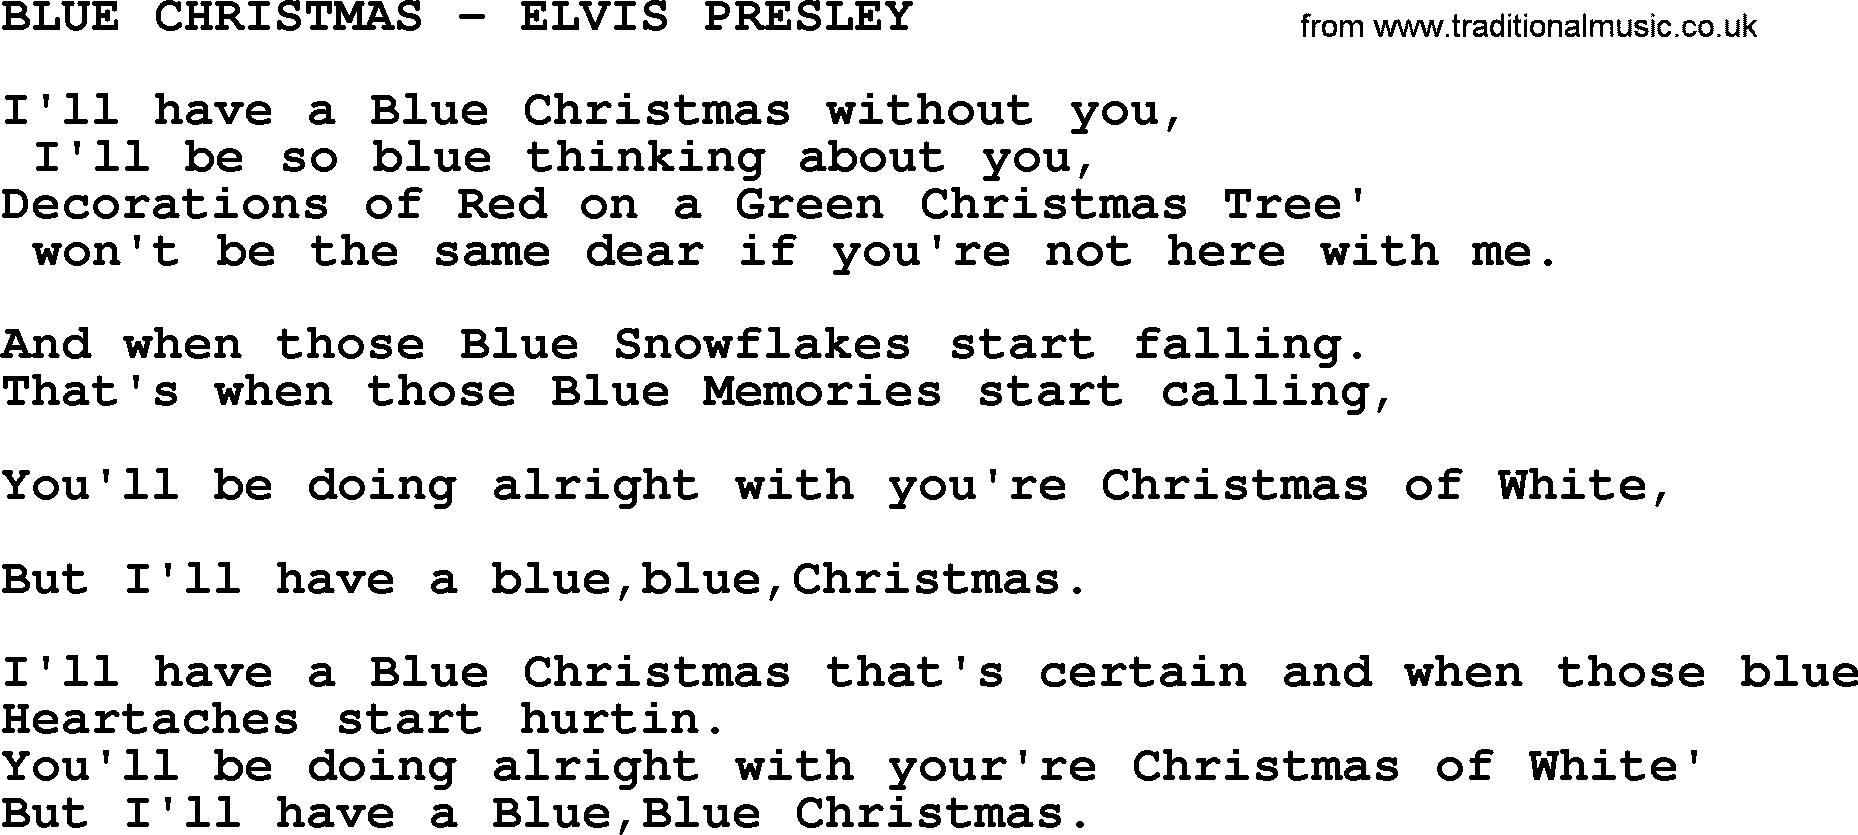 elvis presley song blue christmas elvis presley txt lyrics and chords - I Ll Have A Blue Christmas Lyrics